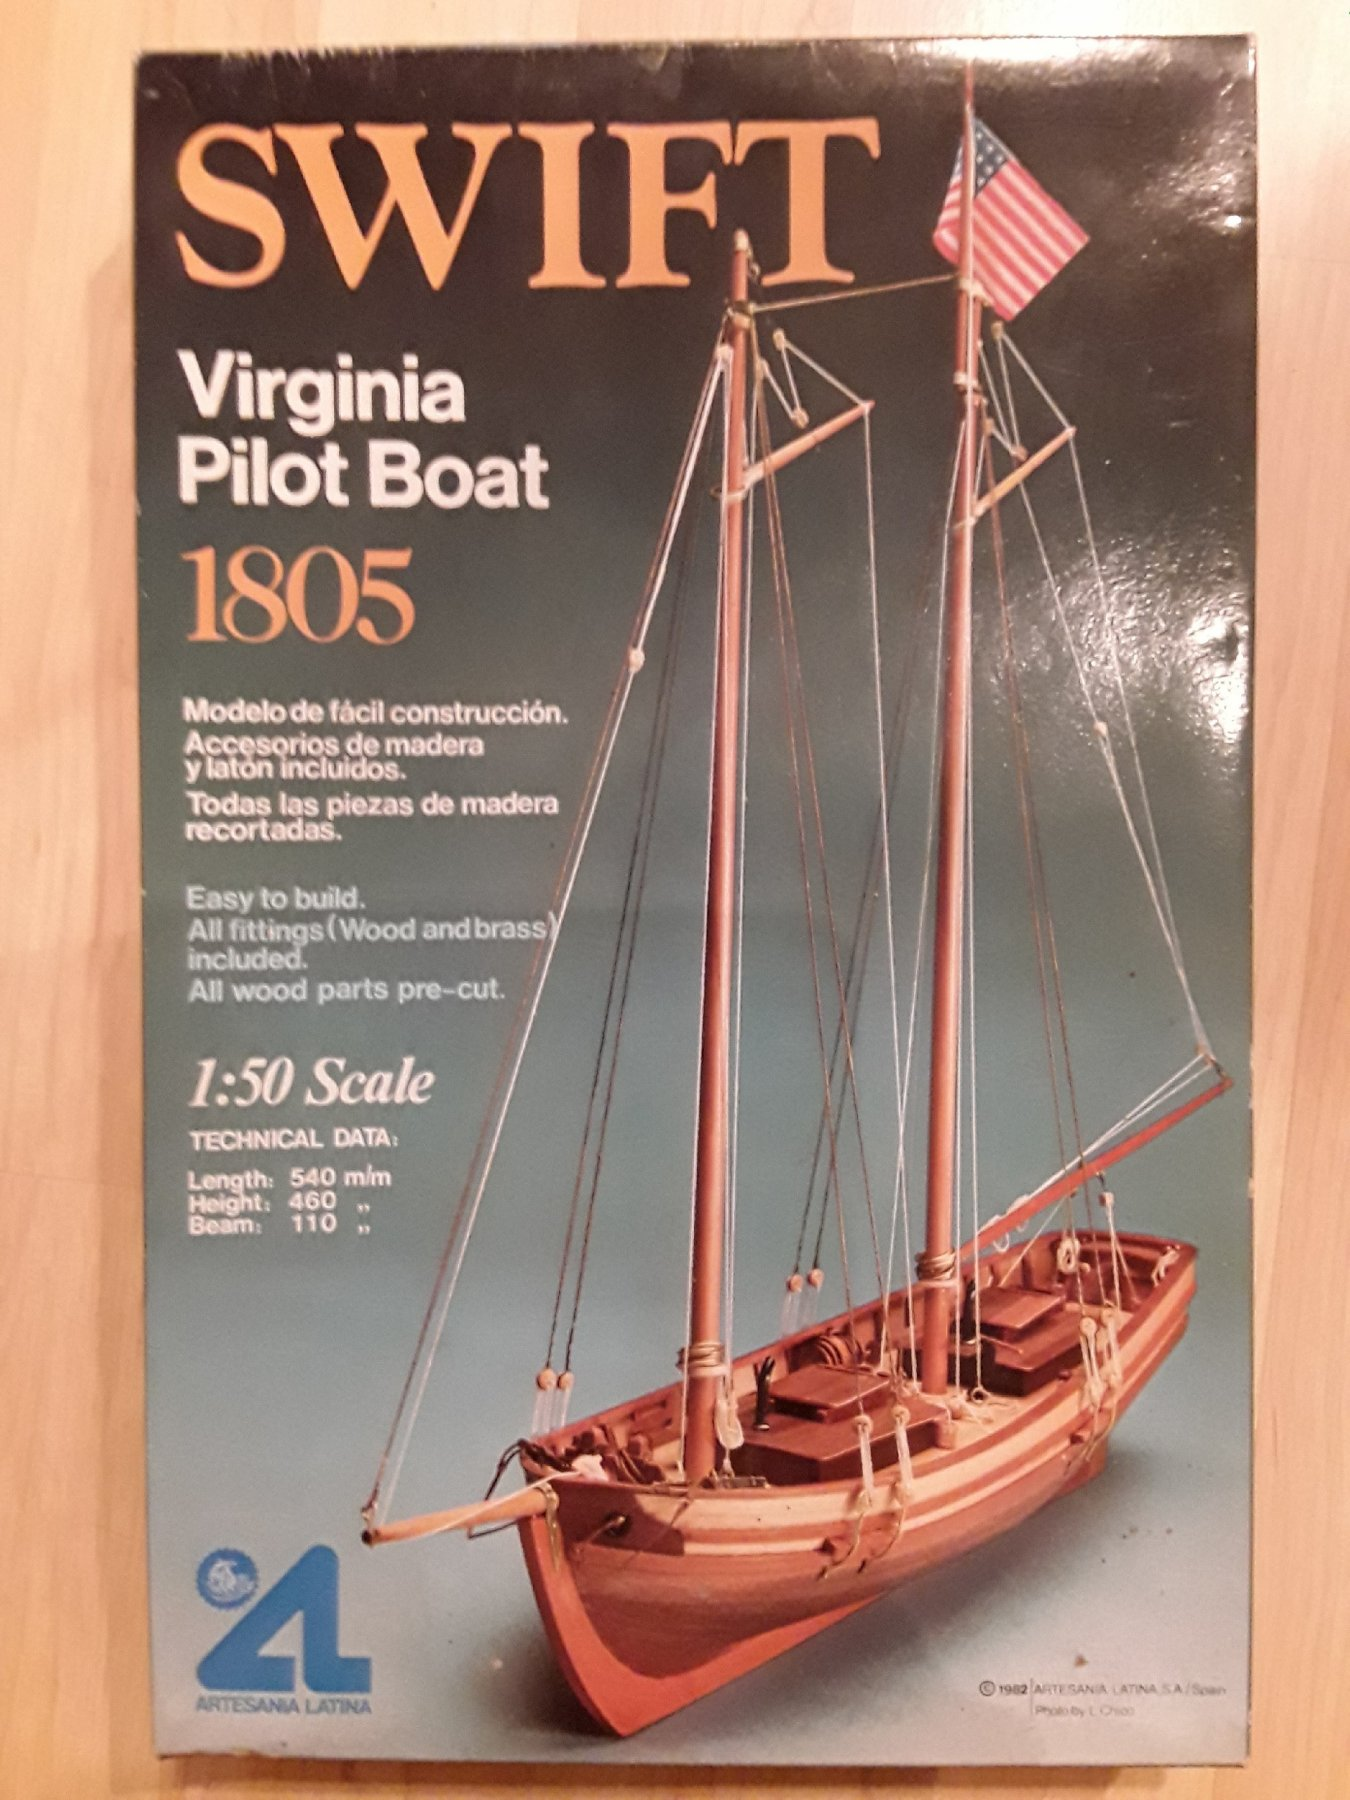 swift virginia pilot boat 1805 instructions